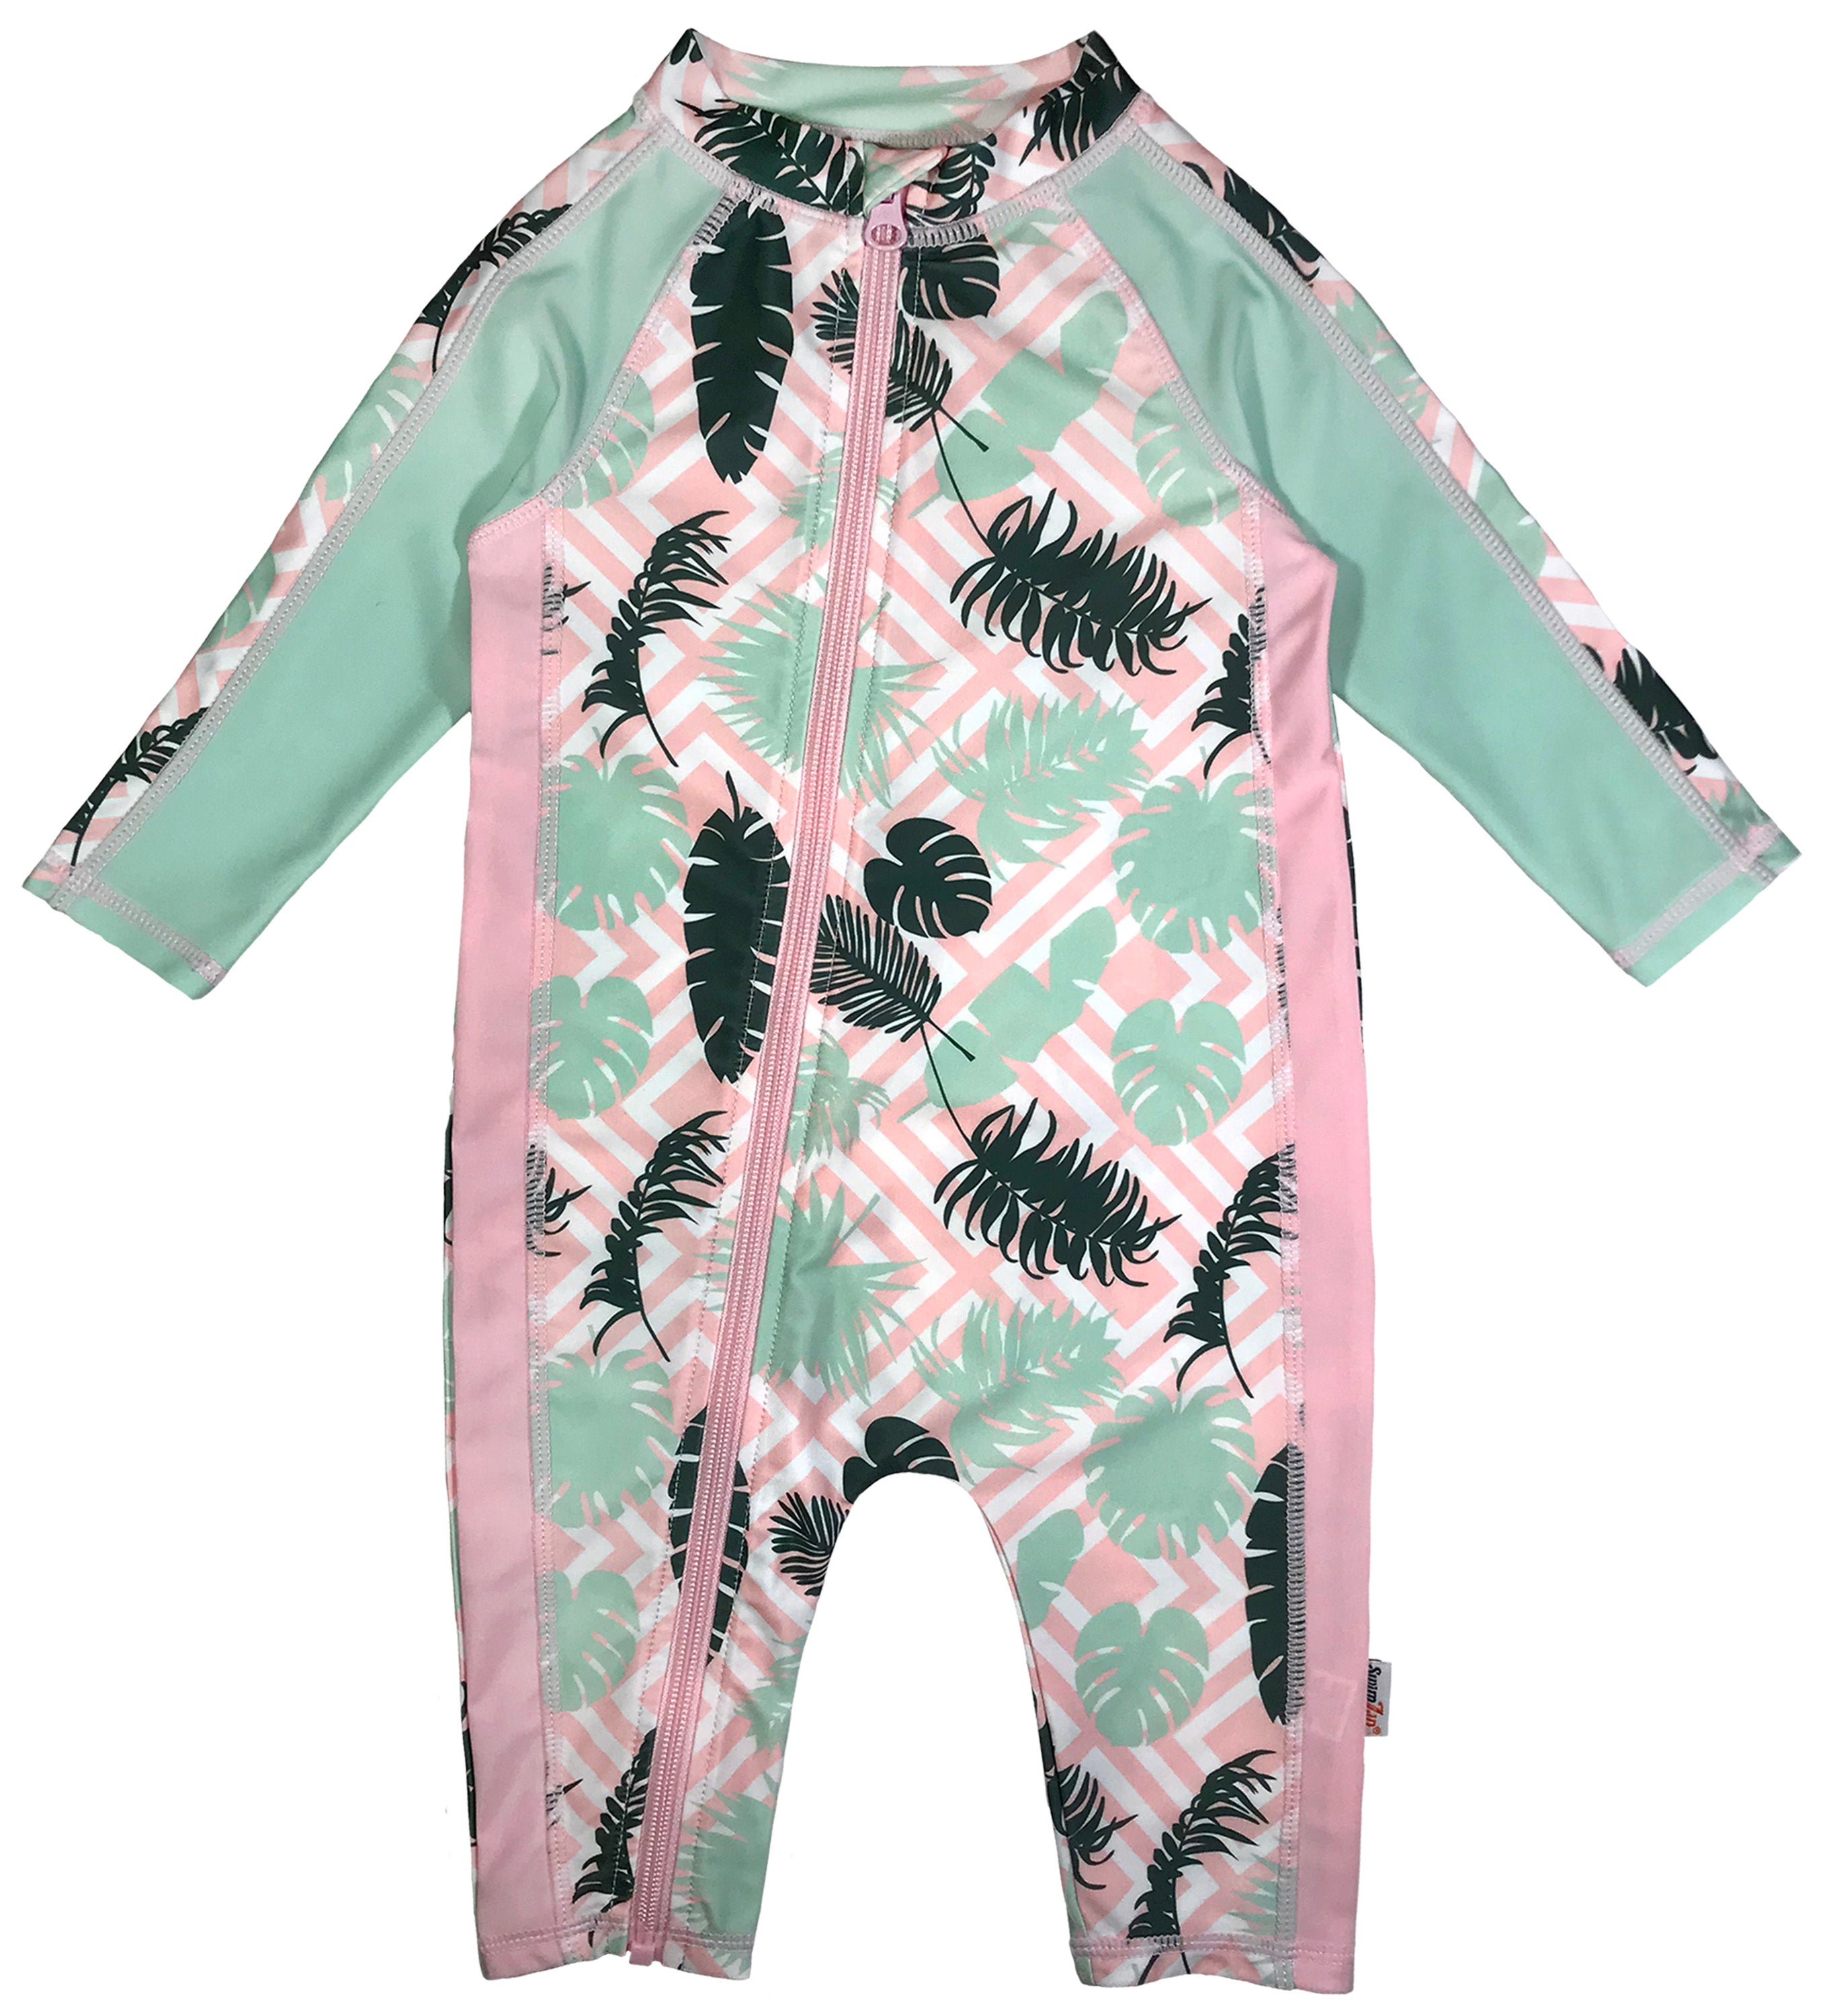 9ba5a052e1 Sunsuit - Girl Long Sleeve Romper Swimsuit with UPF 50+ UV Sun Protection |